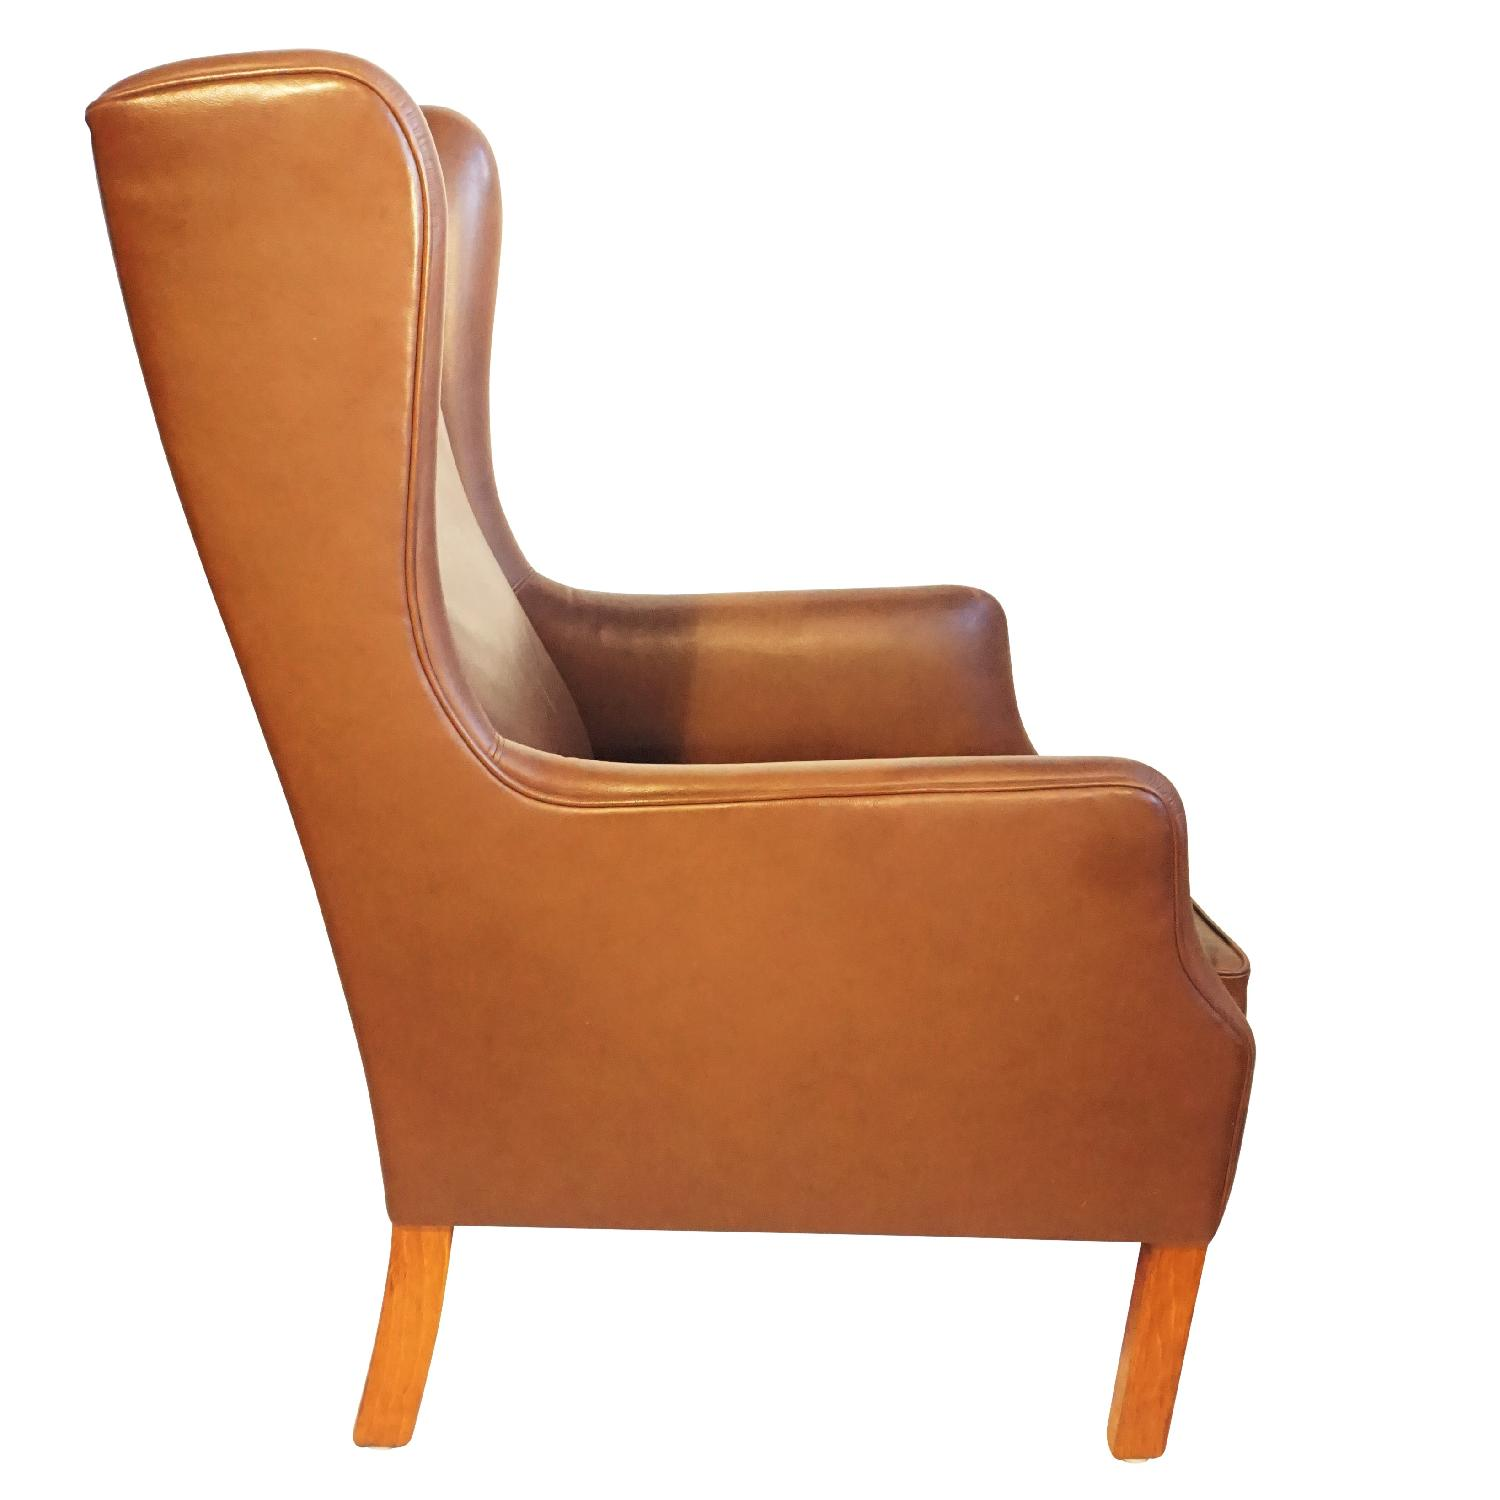 Danish Wingback Leather Lounge Chair - image-1